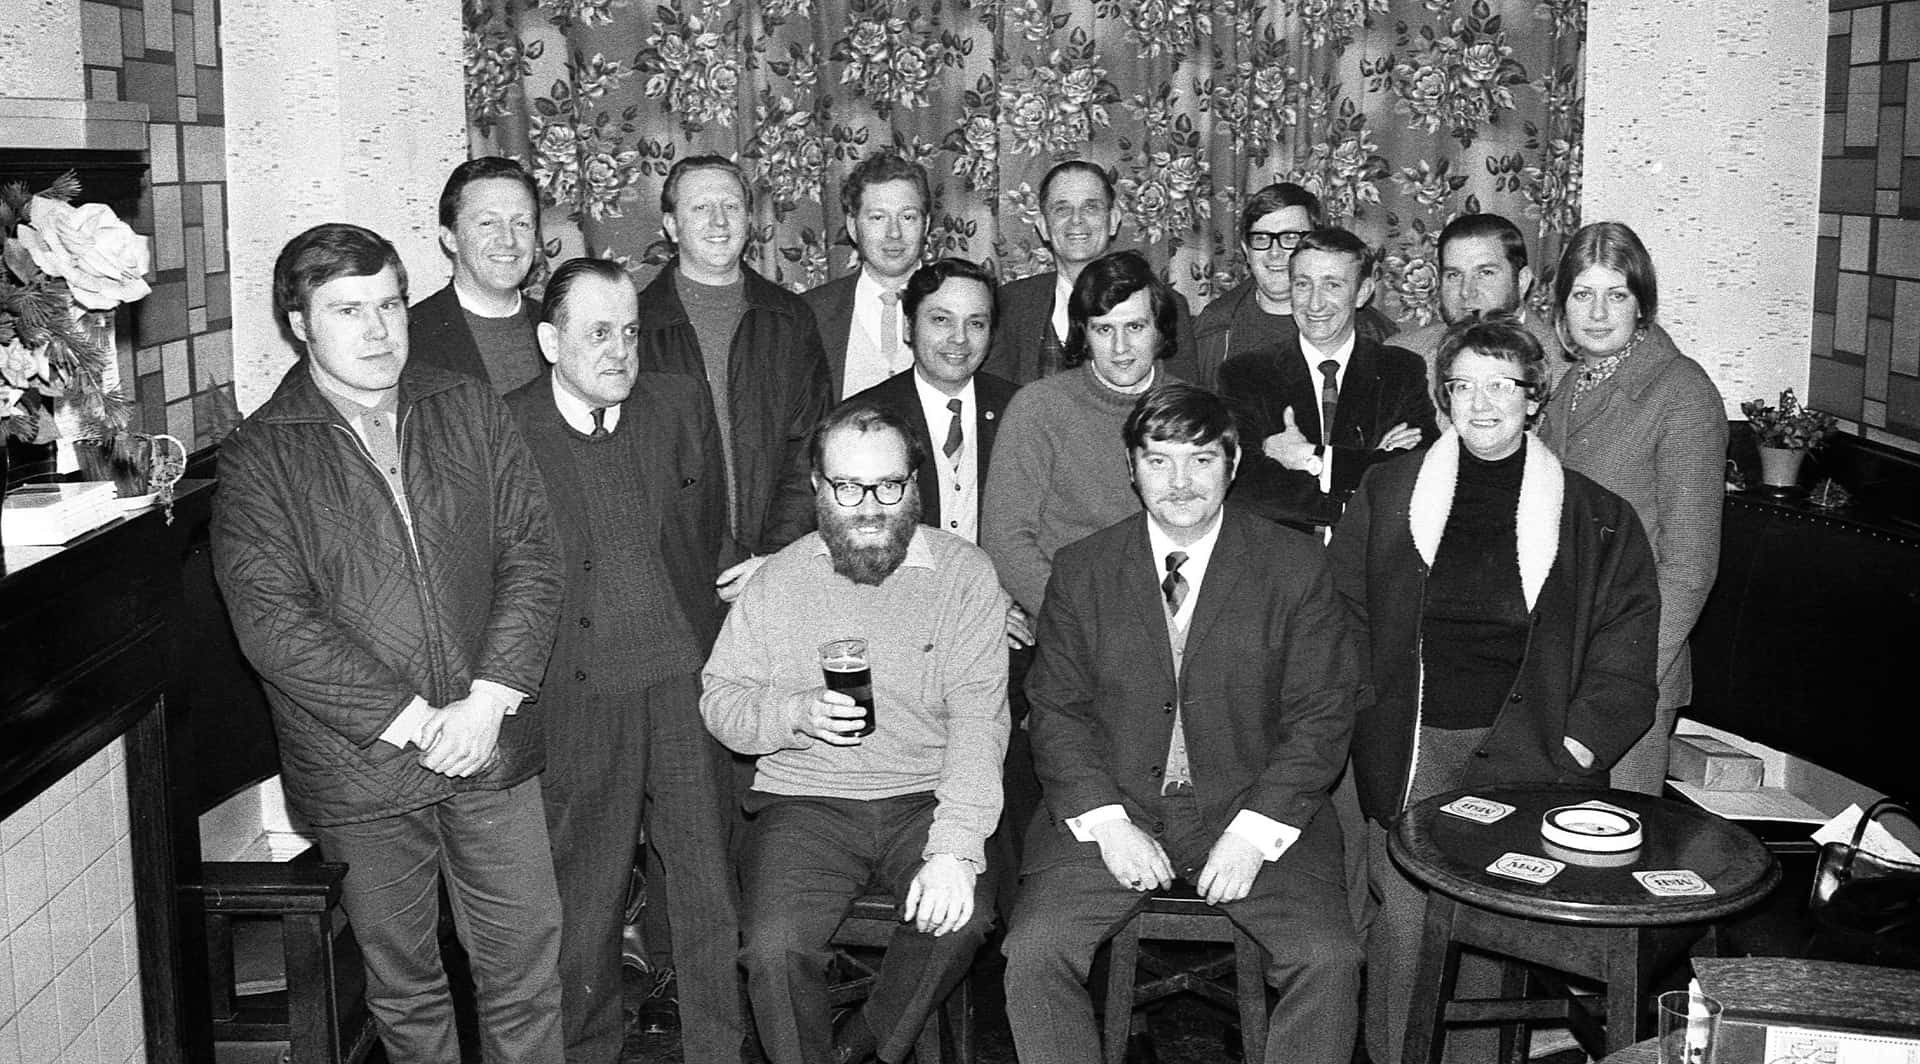 The Black Country Society Committee photographed at the Union Inn in Tipton, 1972